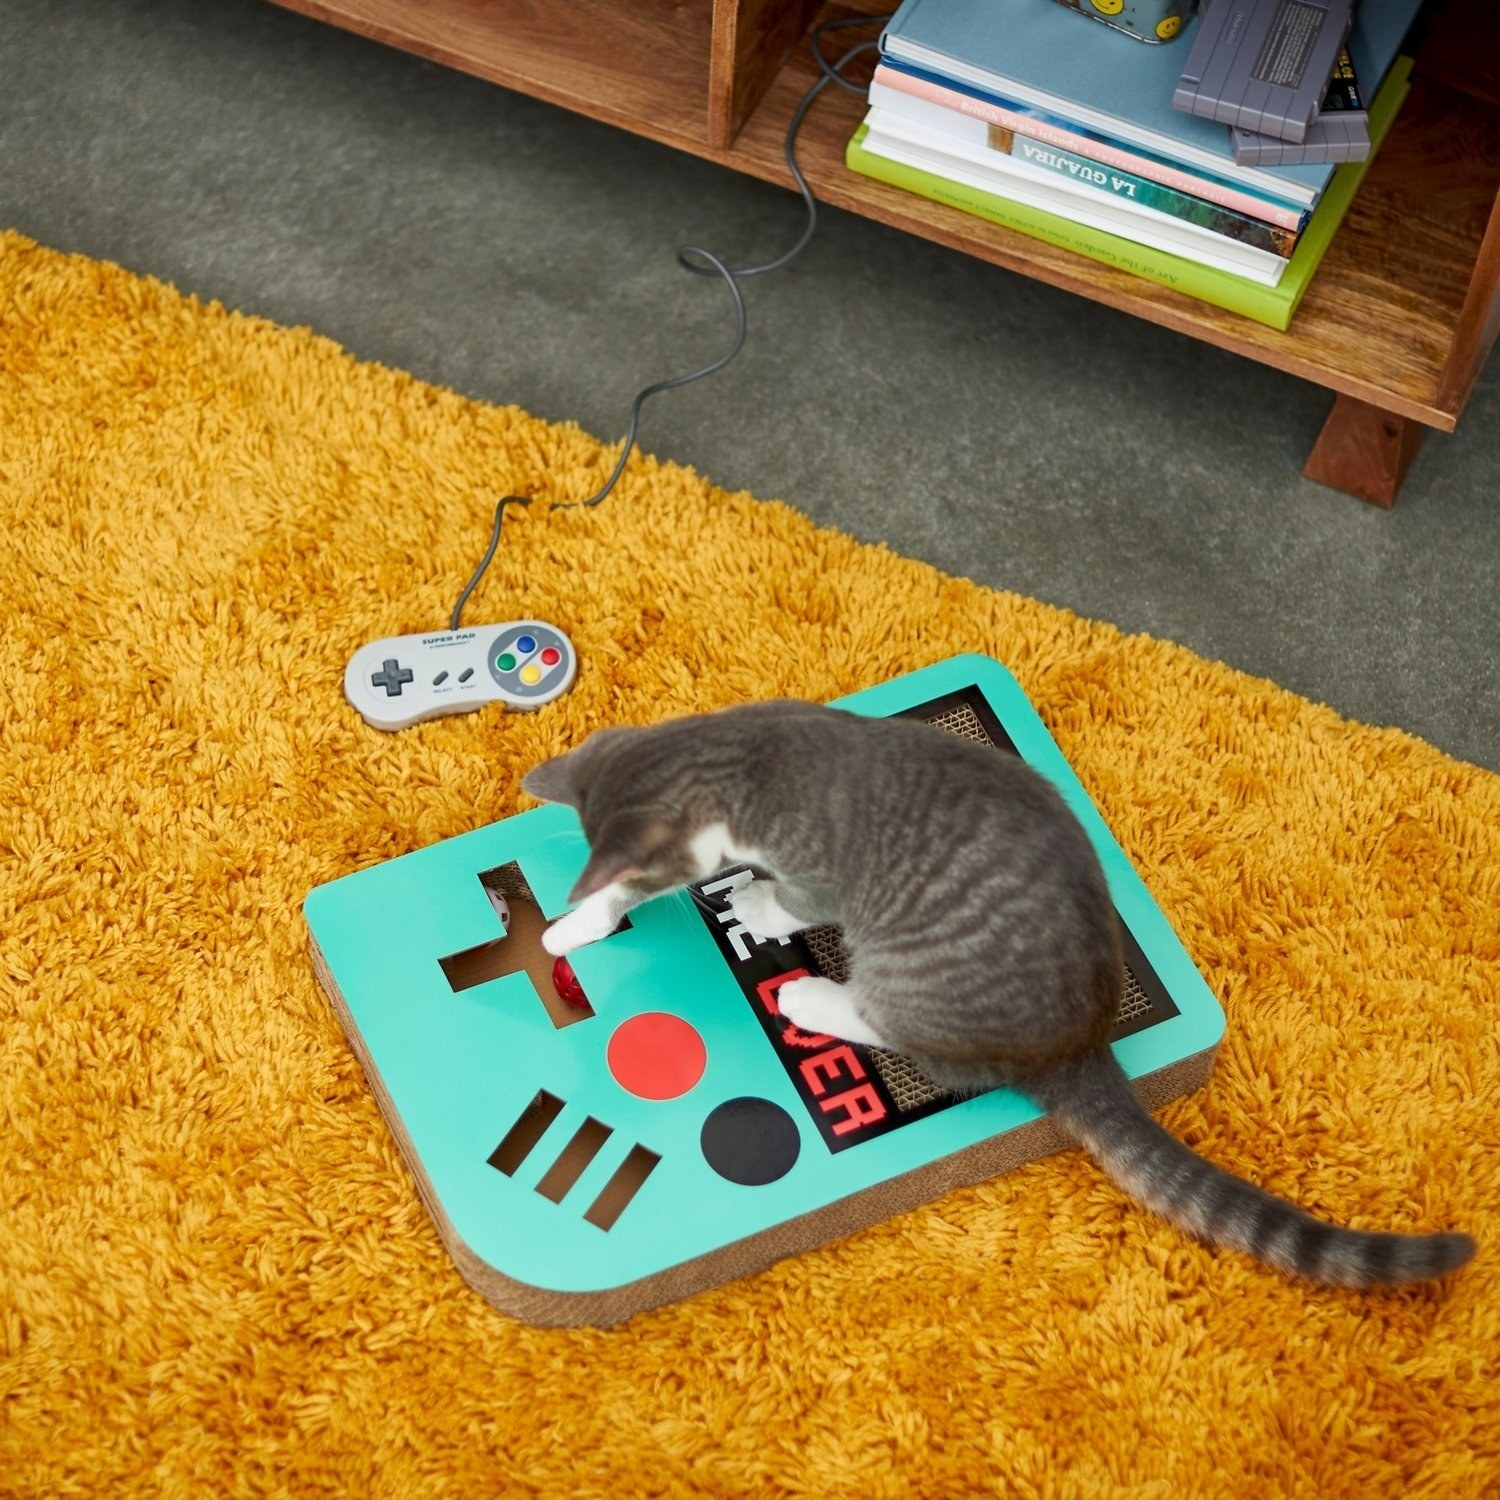 A cat on top of the video game scratcher